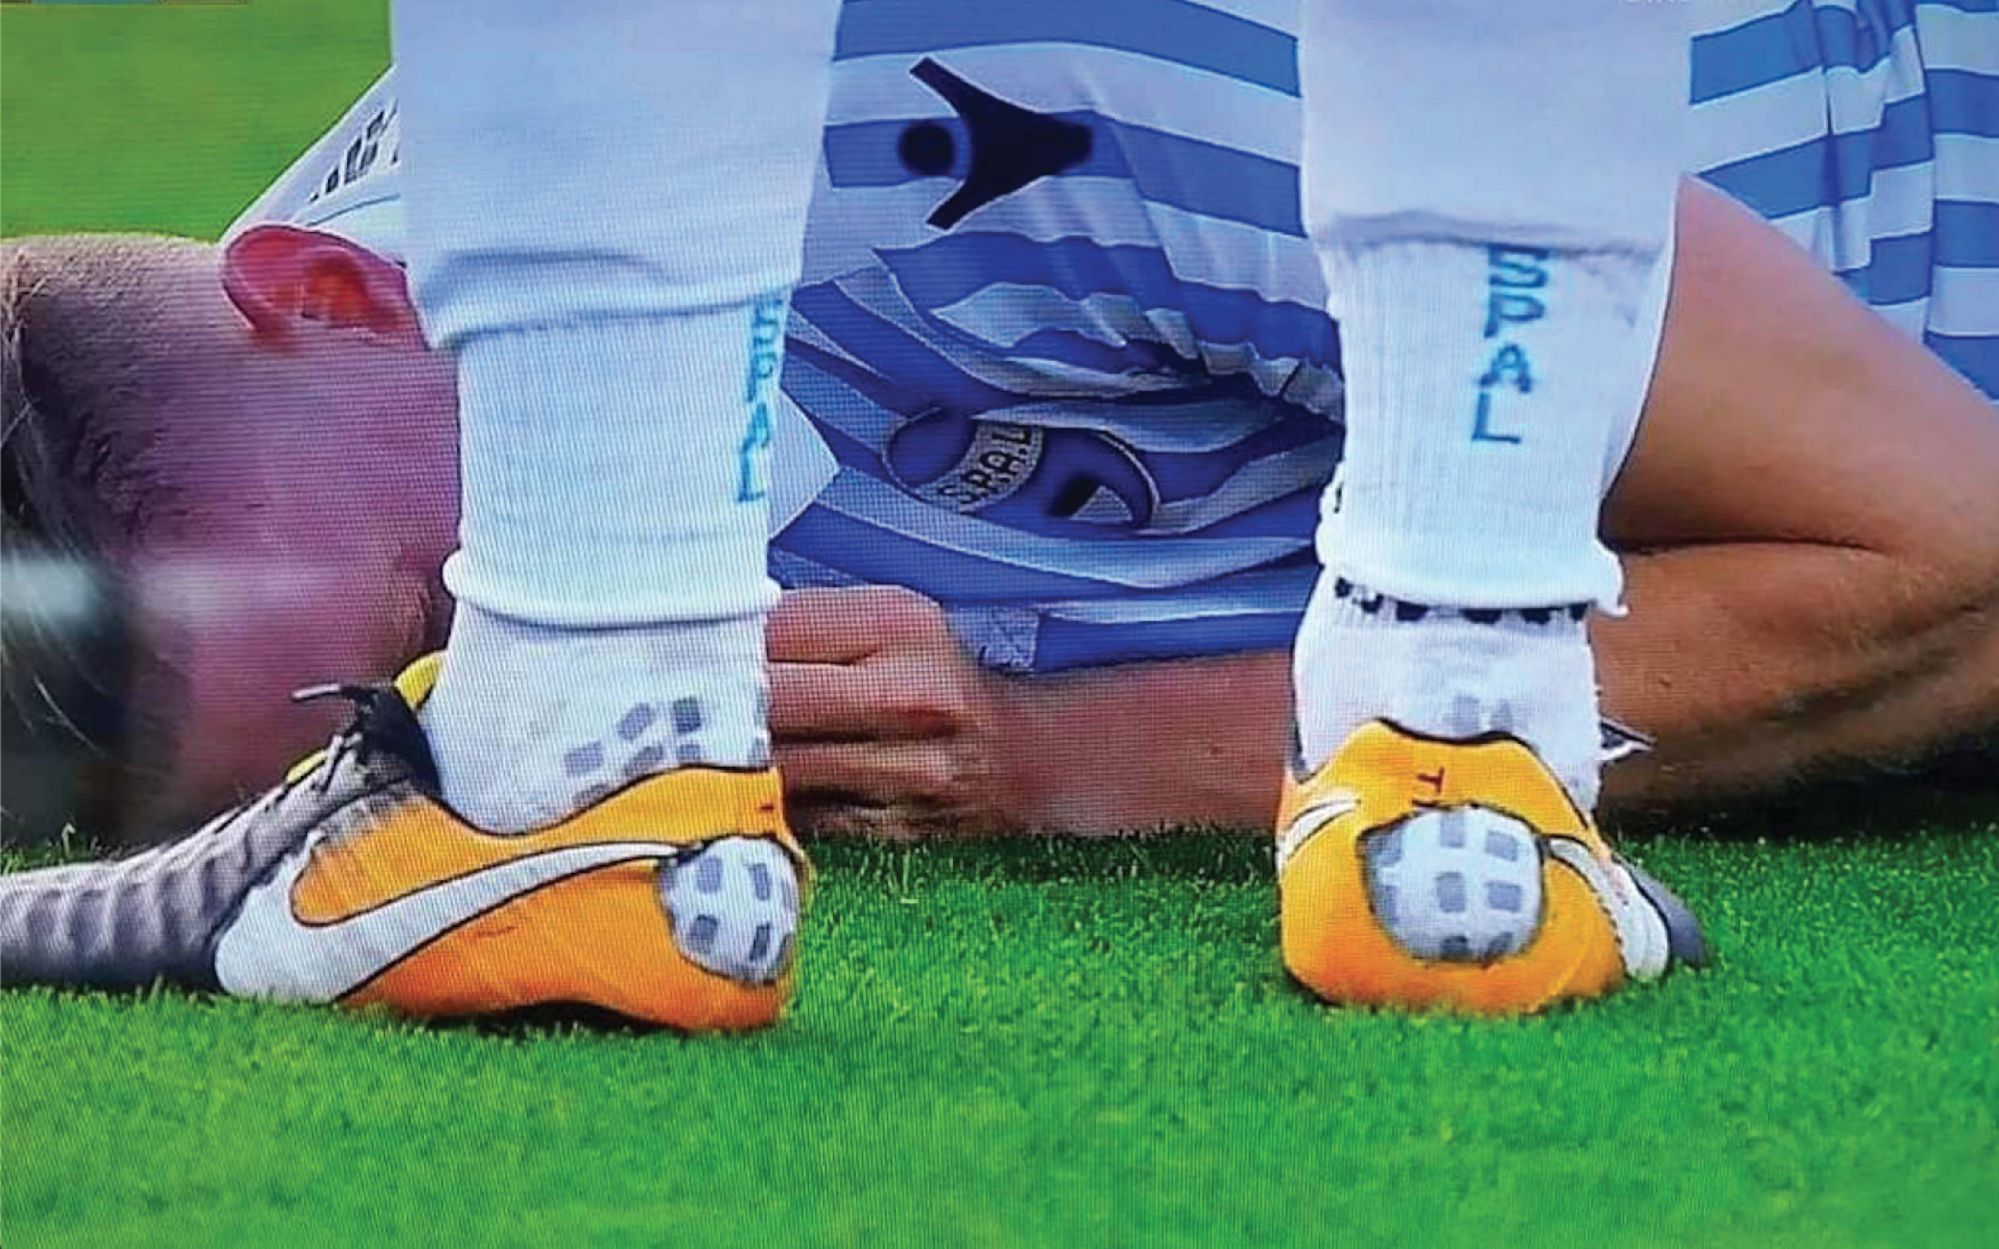 Why do football players cut their shoes?